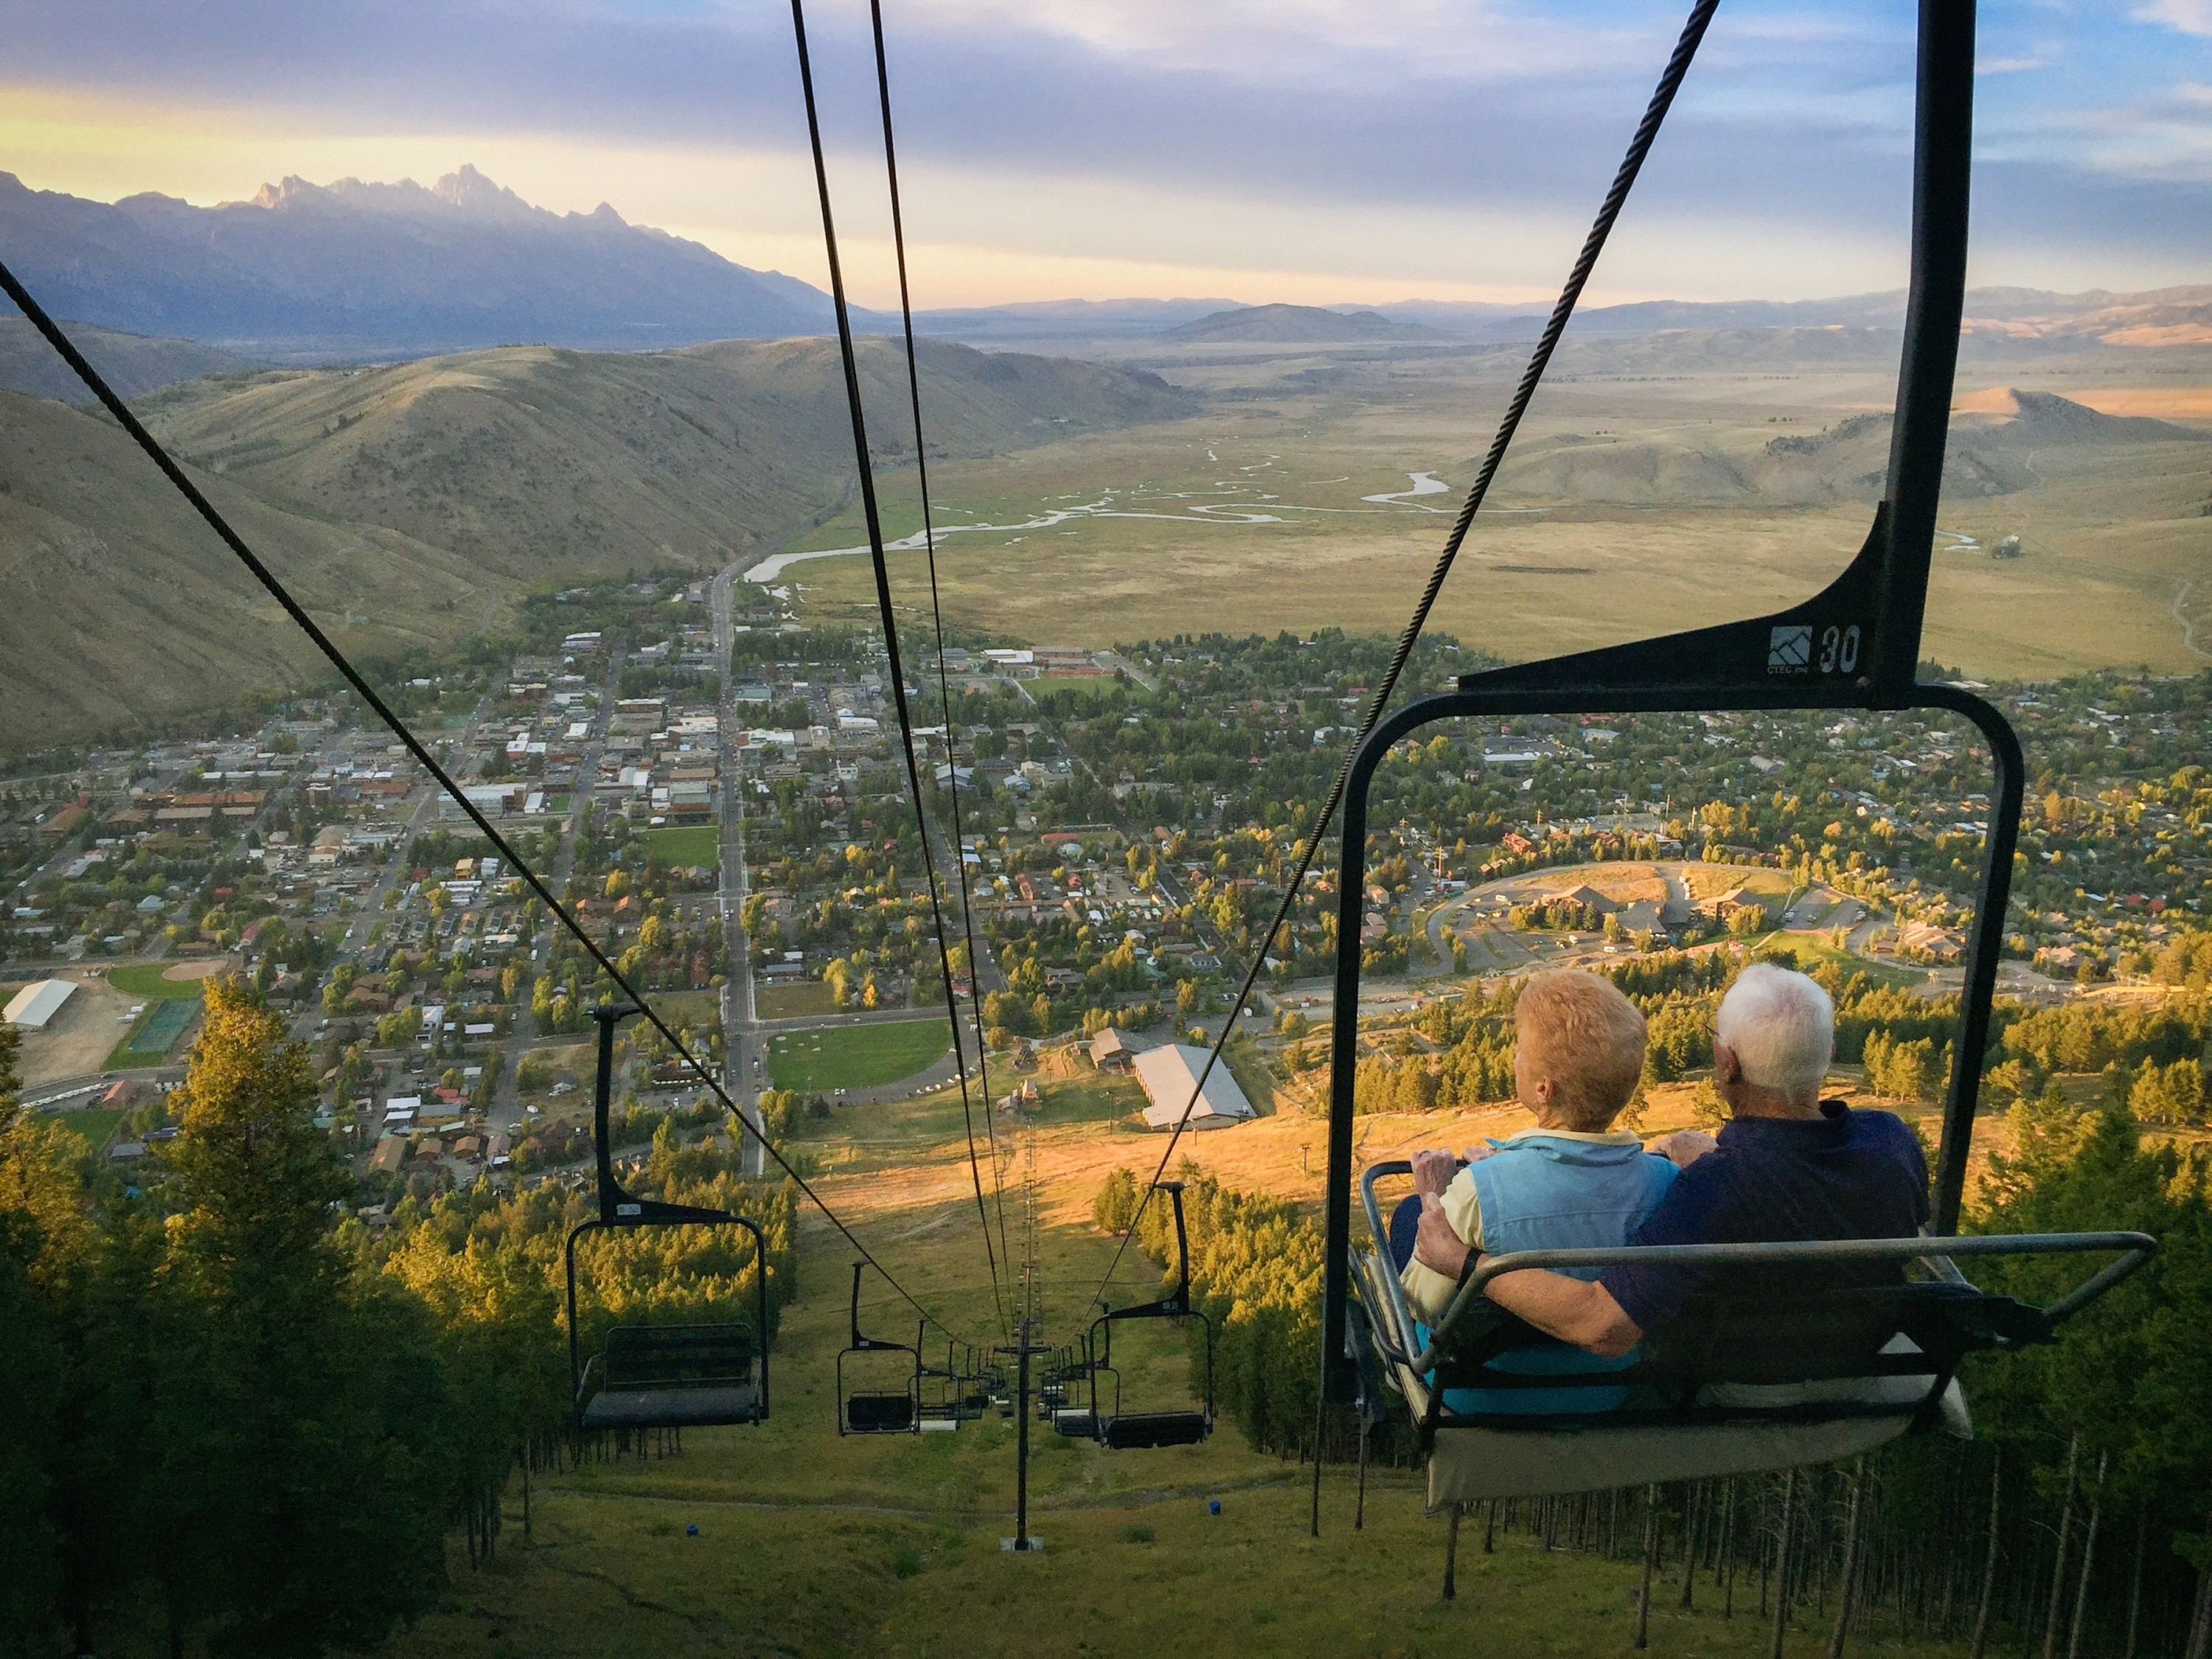 Chairlift ride photo